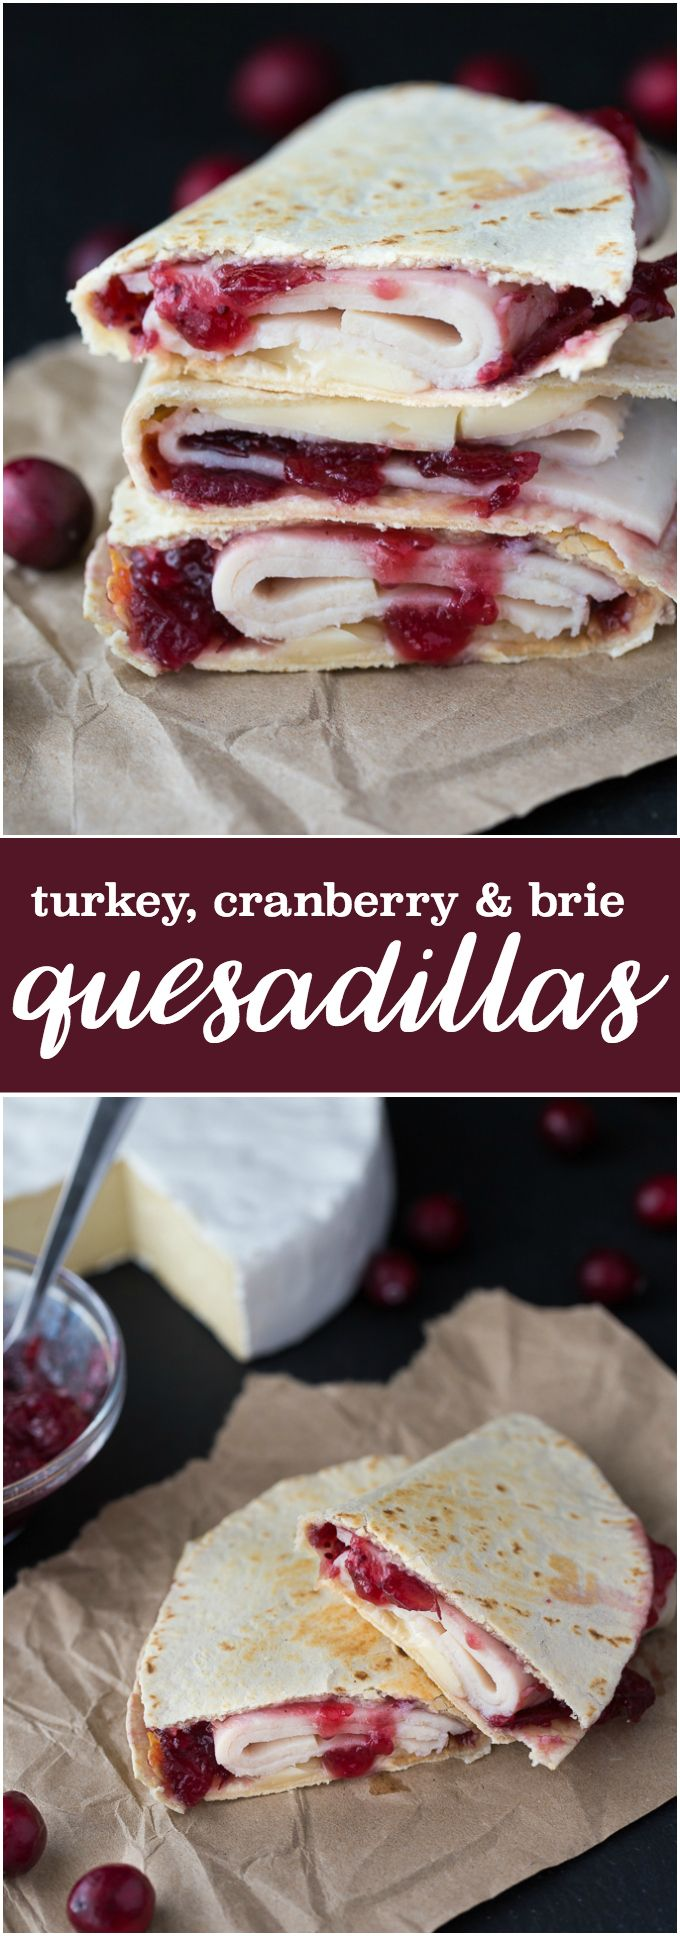 Turkey, Cranberry & Brie Quesadillas - A simple lunch or snack that takes only minutes to prepare!